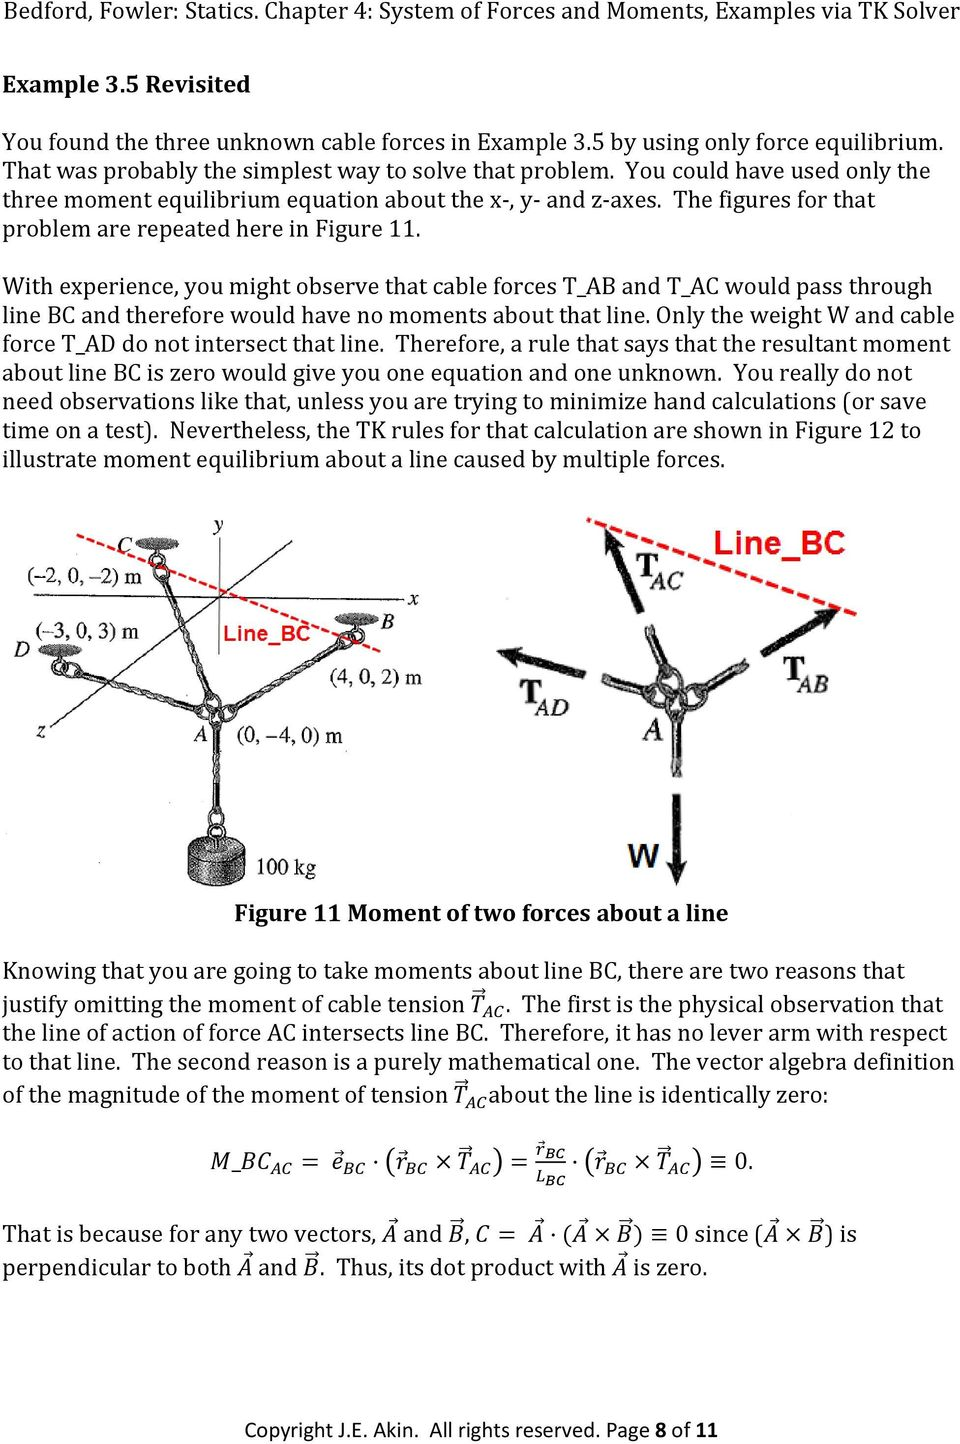 With experience, you might observe that cable forces T_AB and T_AC would pass through line BC and therefore would have no moments about that line.